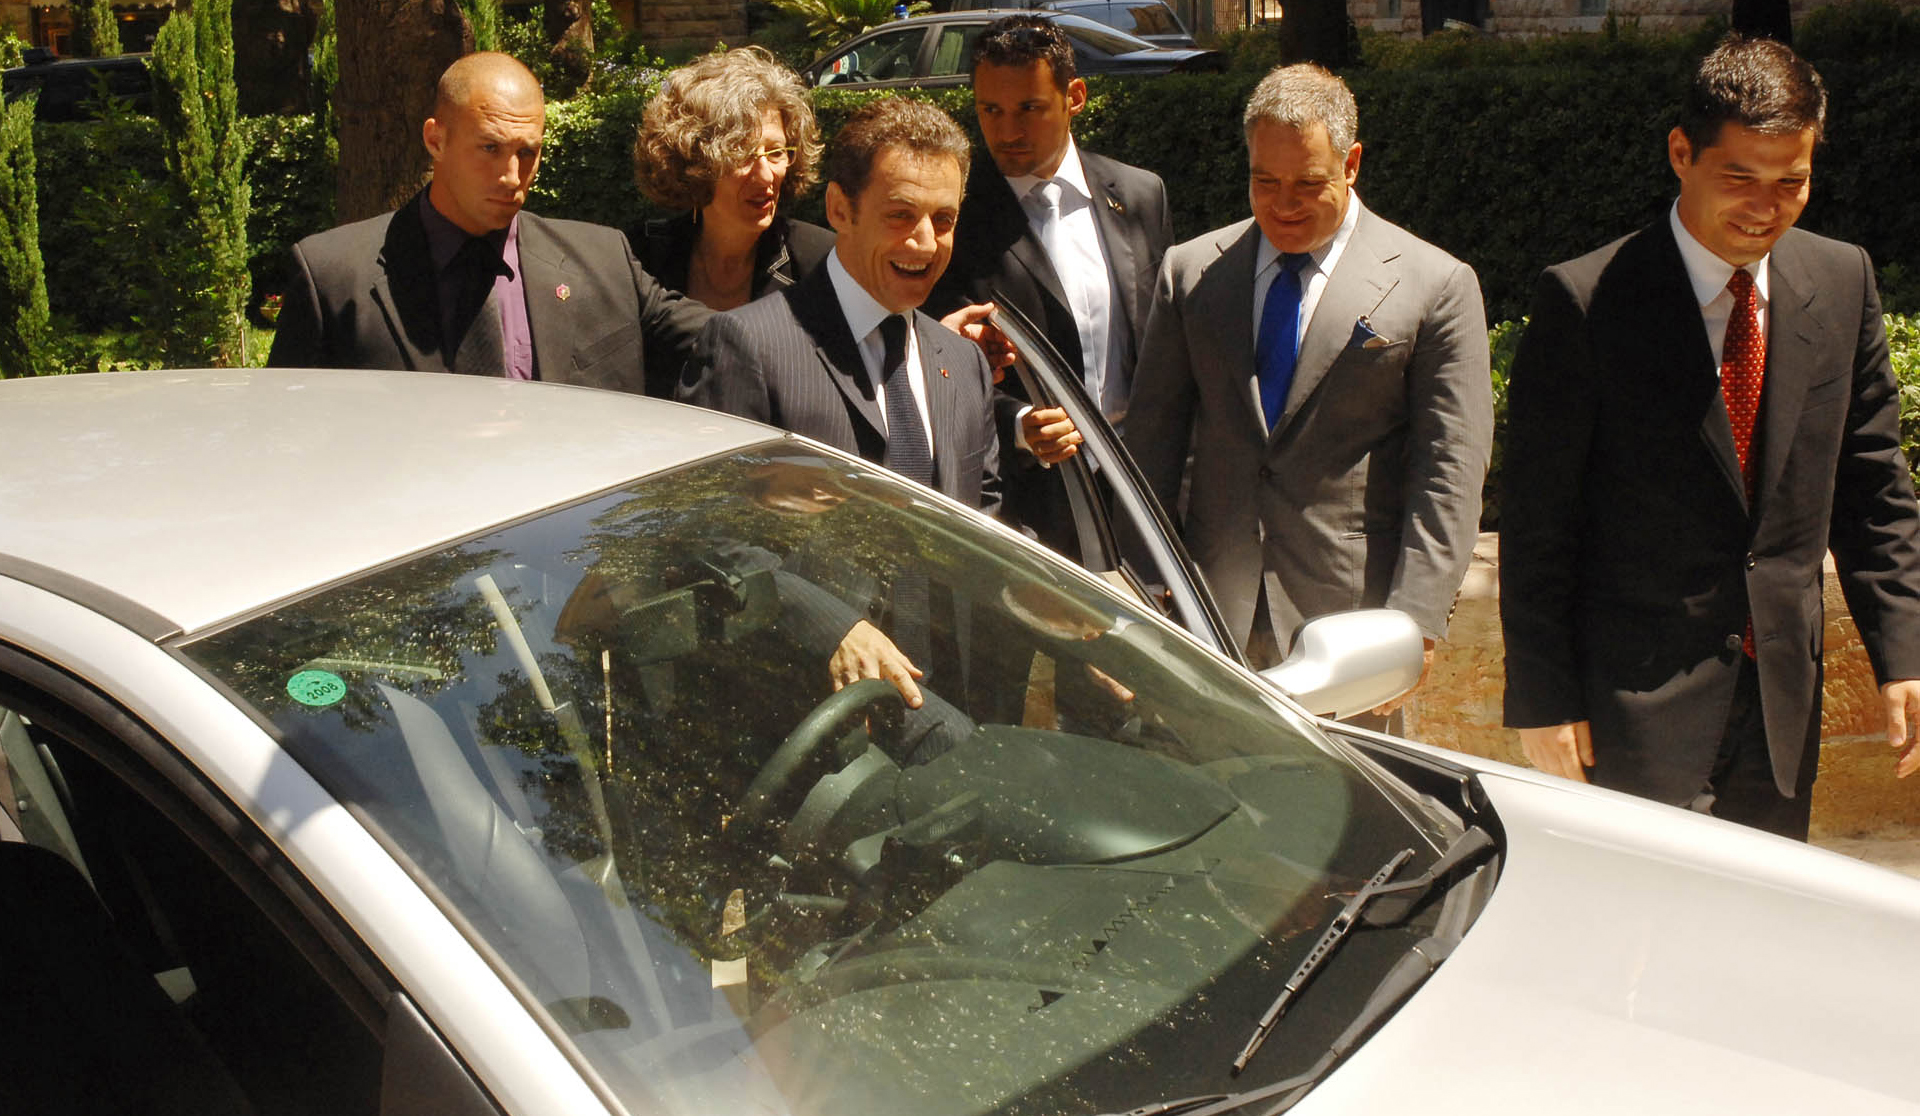 electric commuter cars are